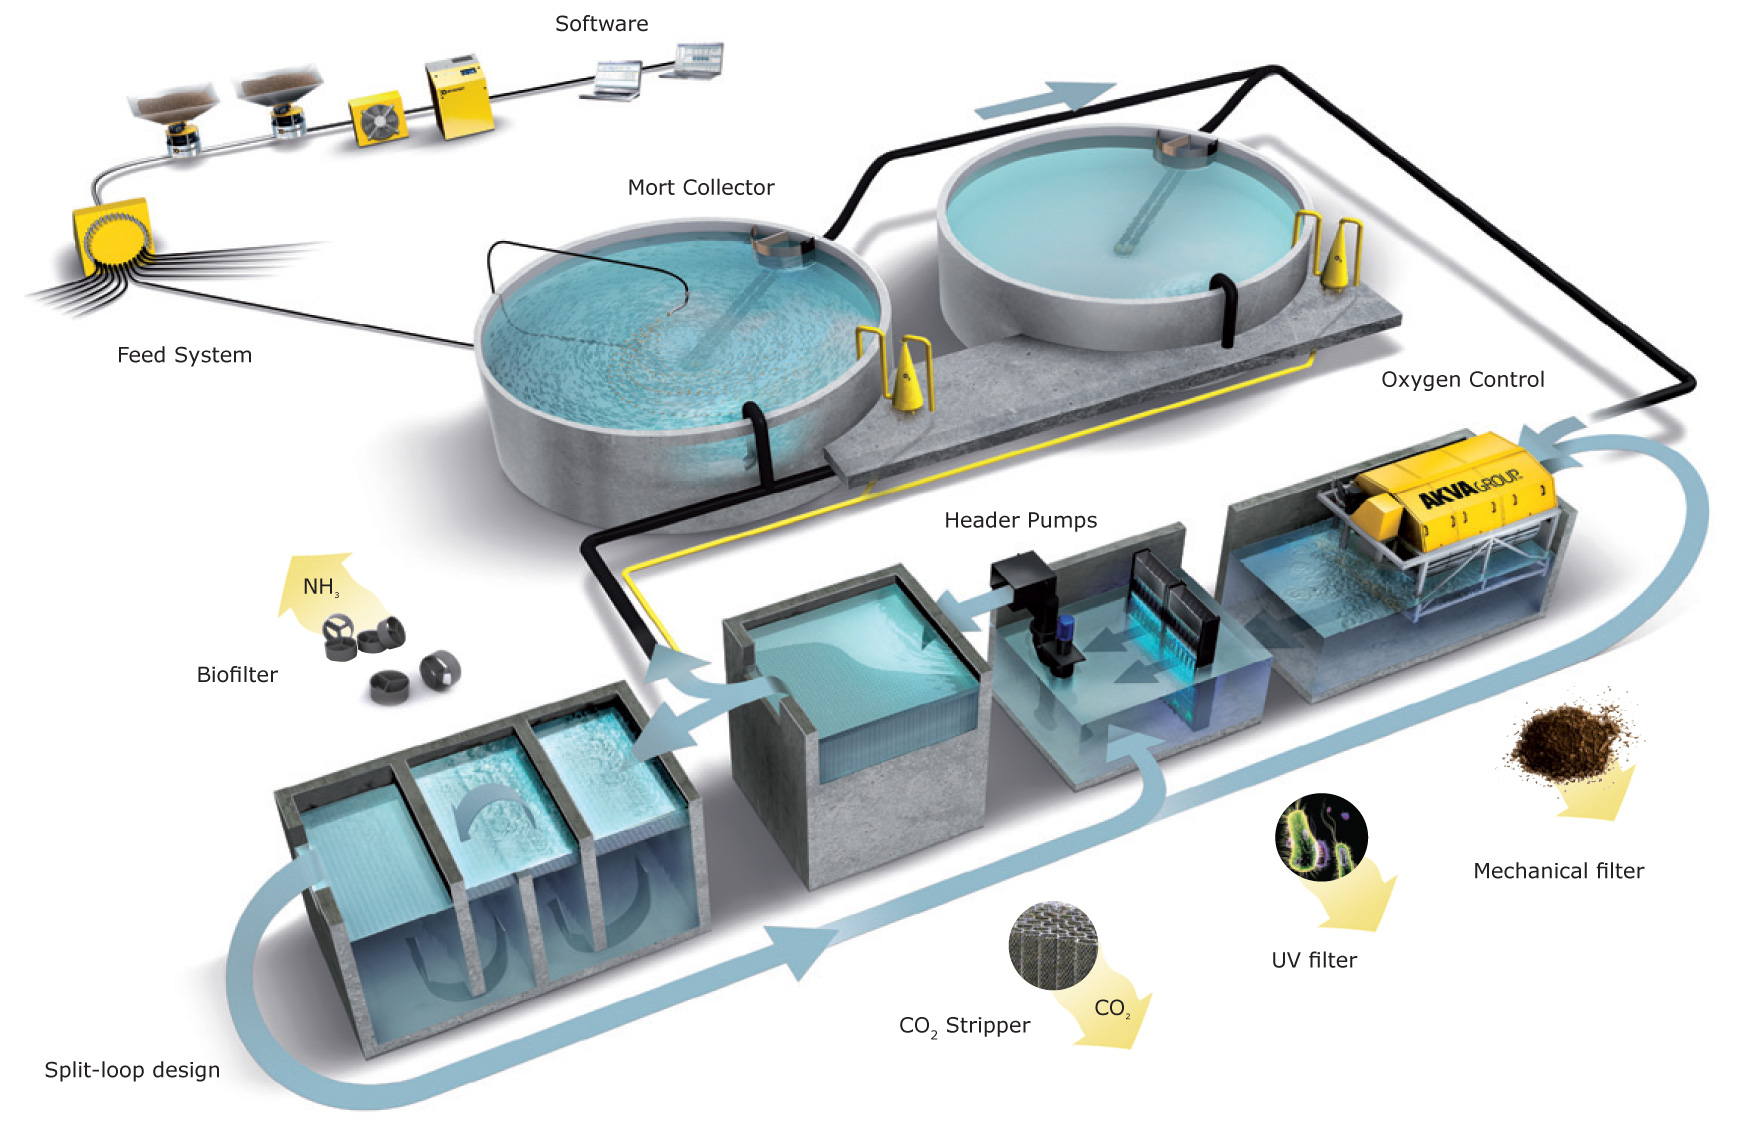 AKVA group: The Recirculation Concept - Assured